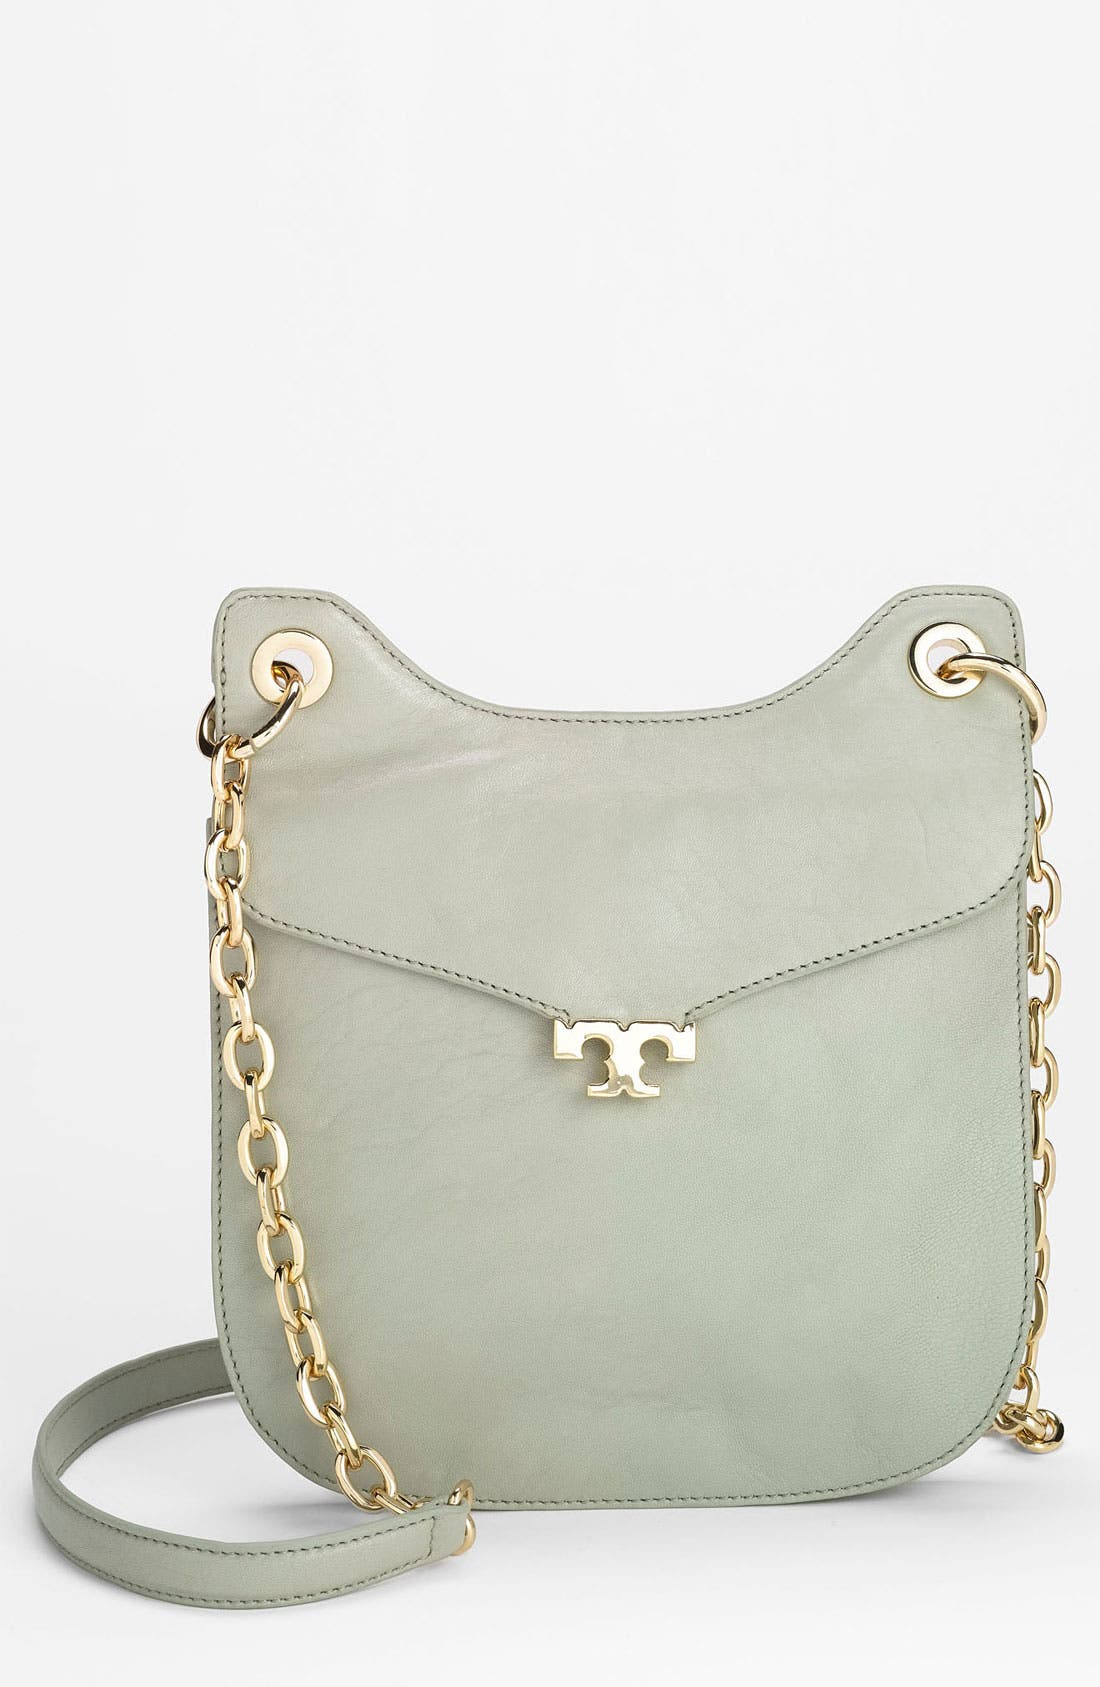 Alternate Image 1 Selected - Tory Burch 'Megan' Crossbody Bag